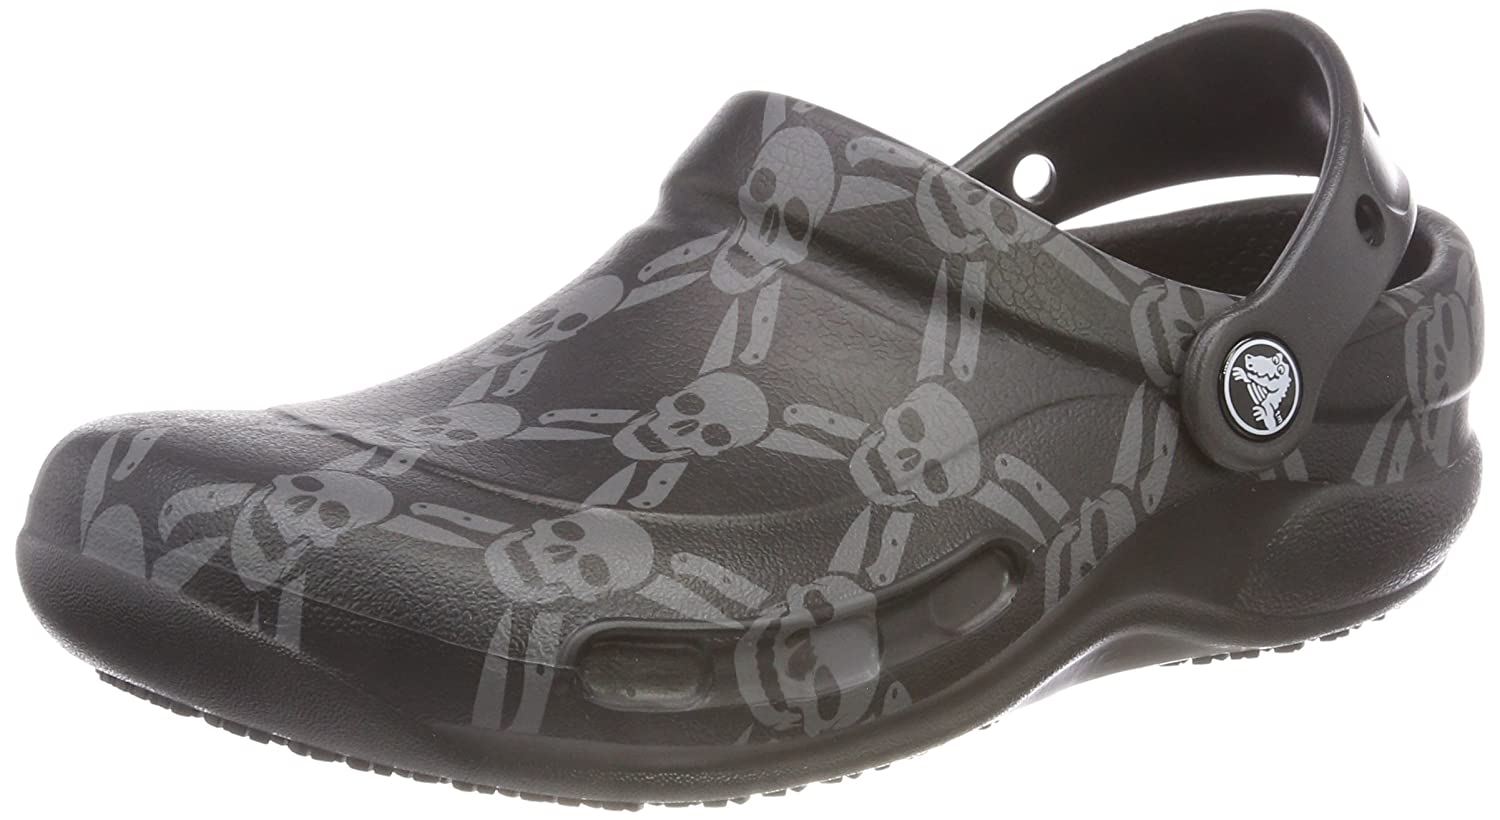 Crocs Bistro Graphic Clog, Zuecos Unisex Adulto 37/38 EU|Negro (Black/Smoke)